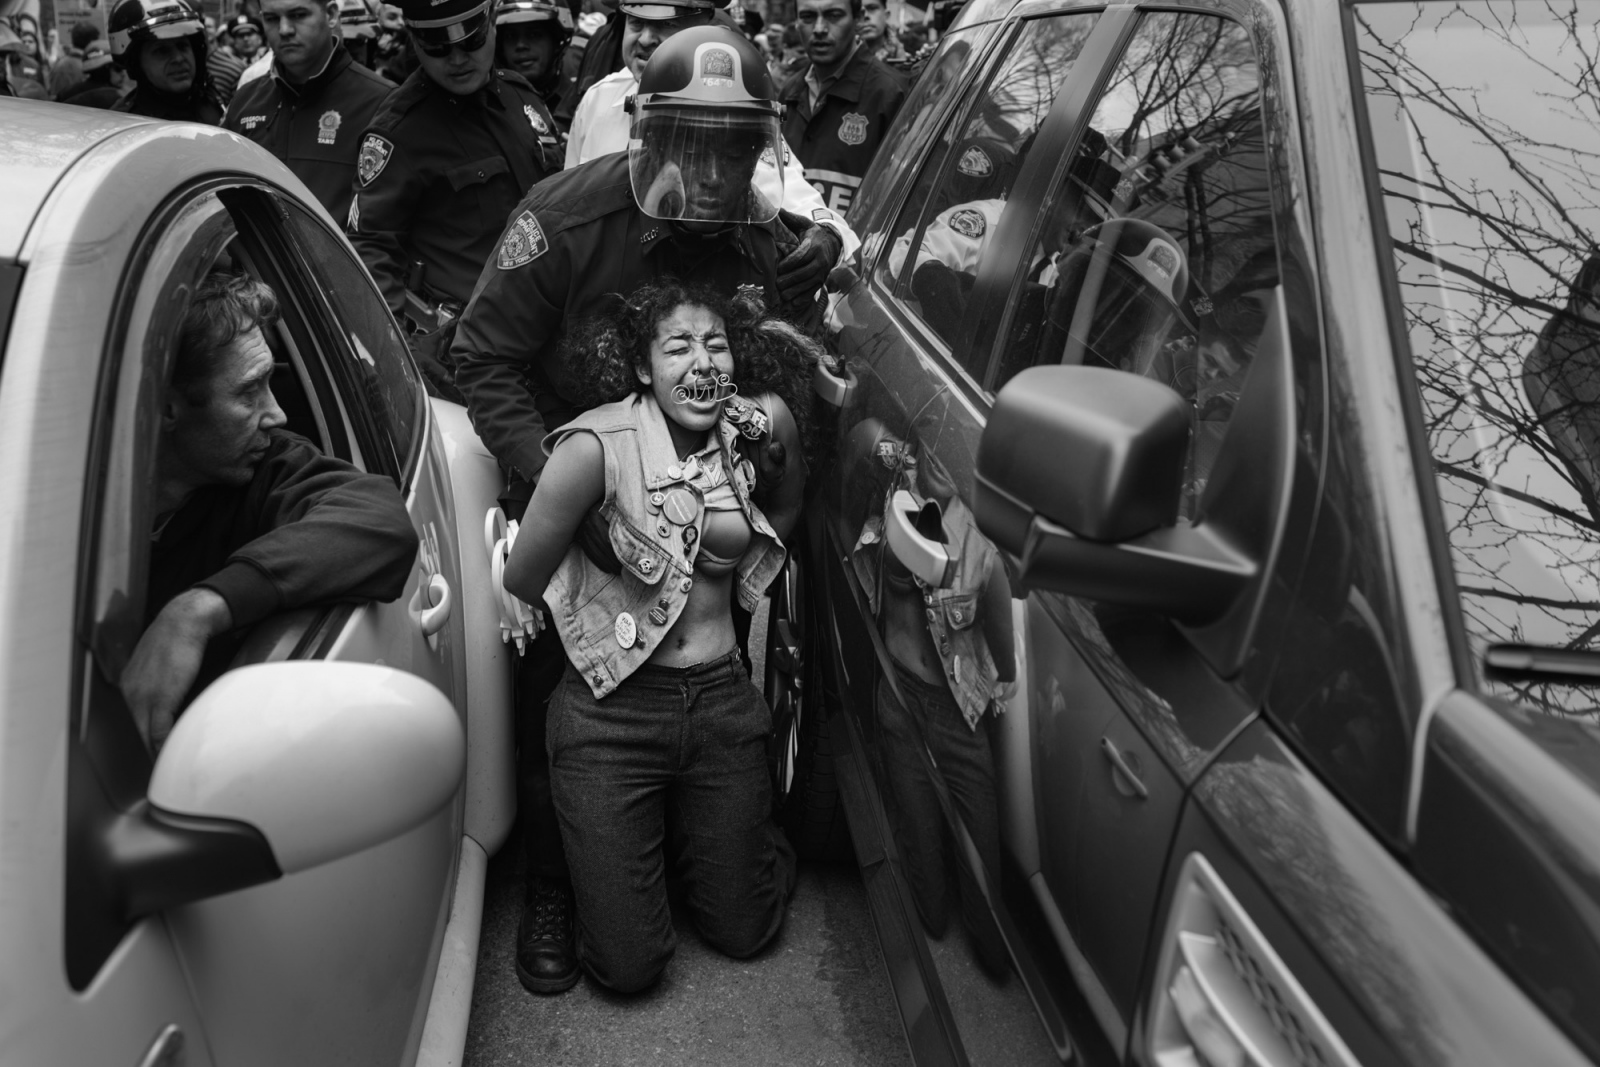 A young girl named Stevie is arrested on a march through the Lower East Side.